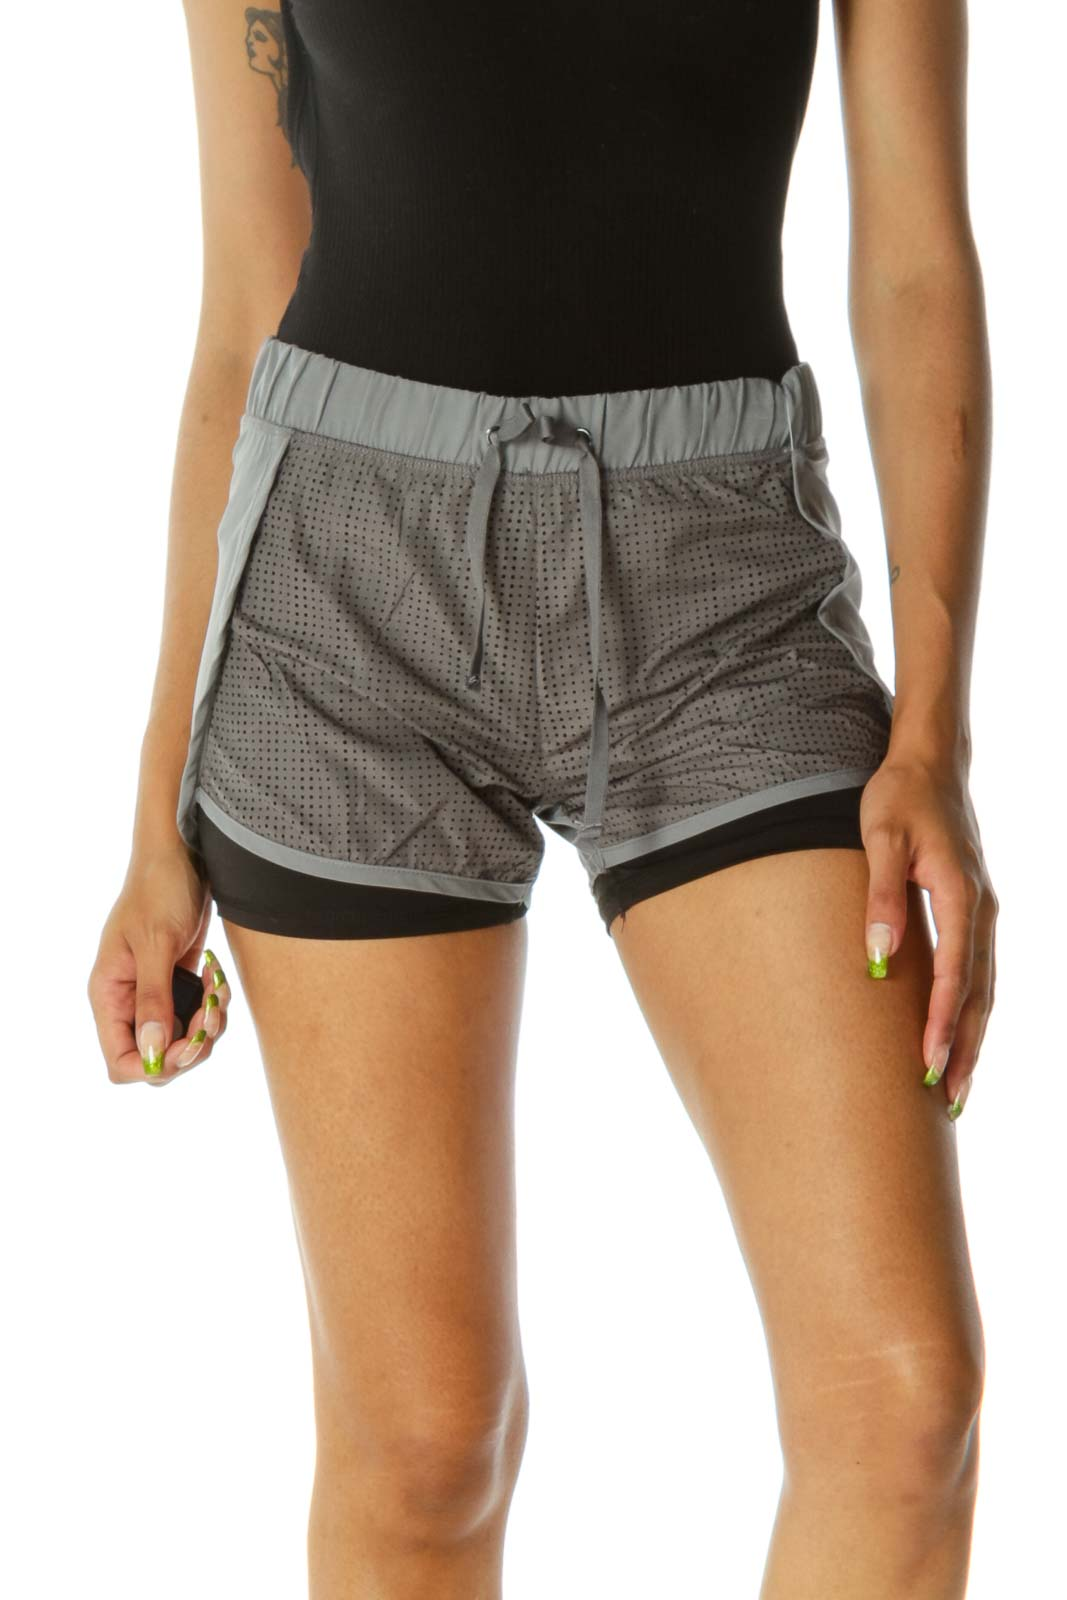 Gray Black Inside-Shorts Cut-Out Mesh Front Shorts Front